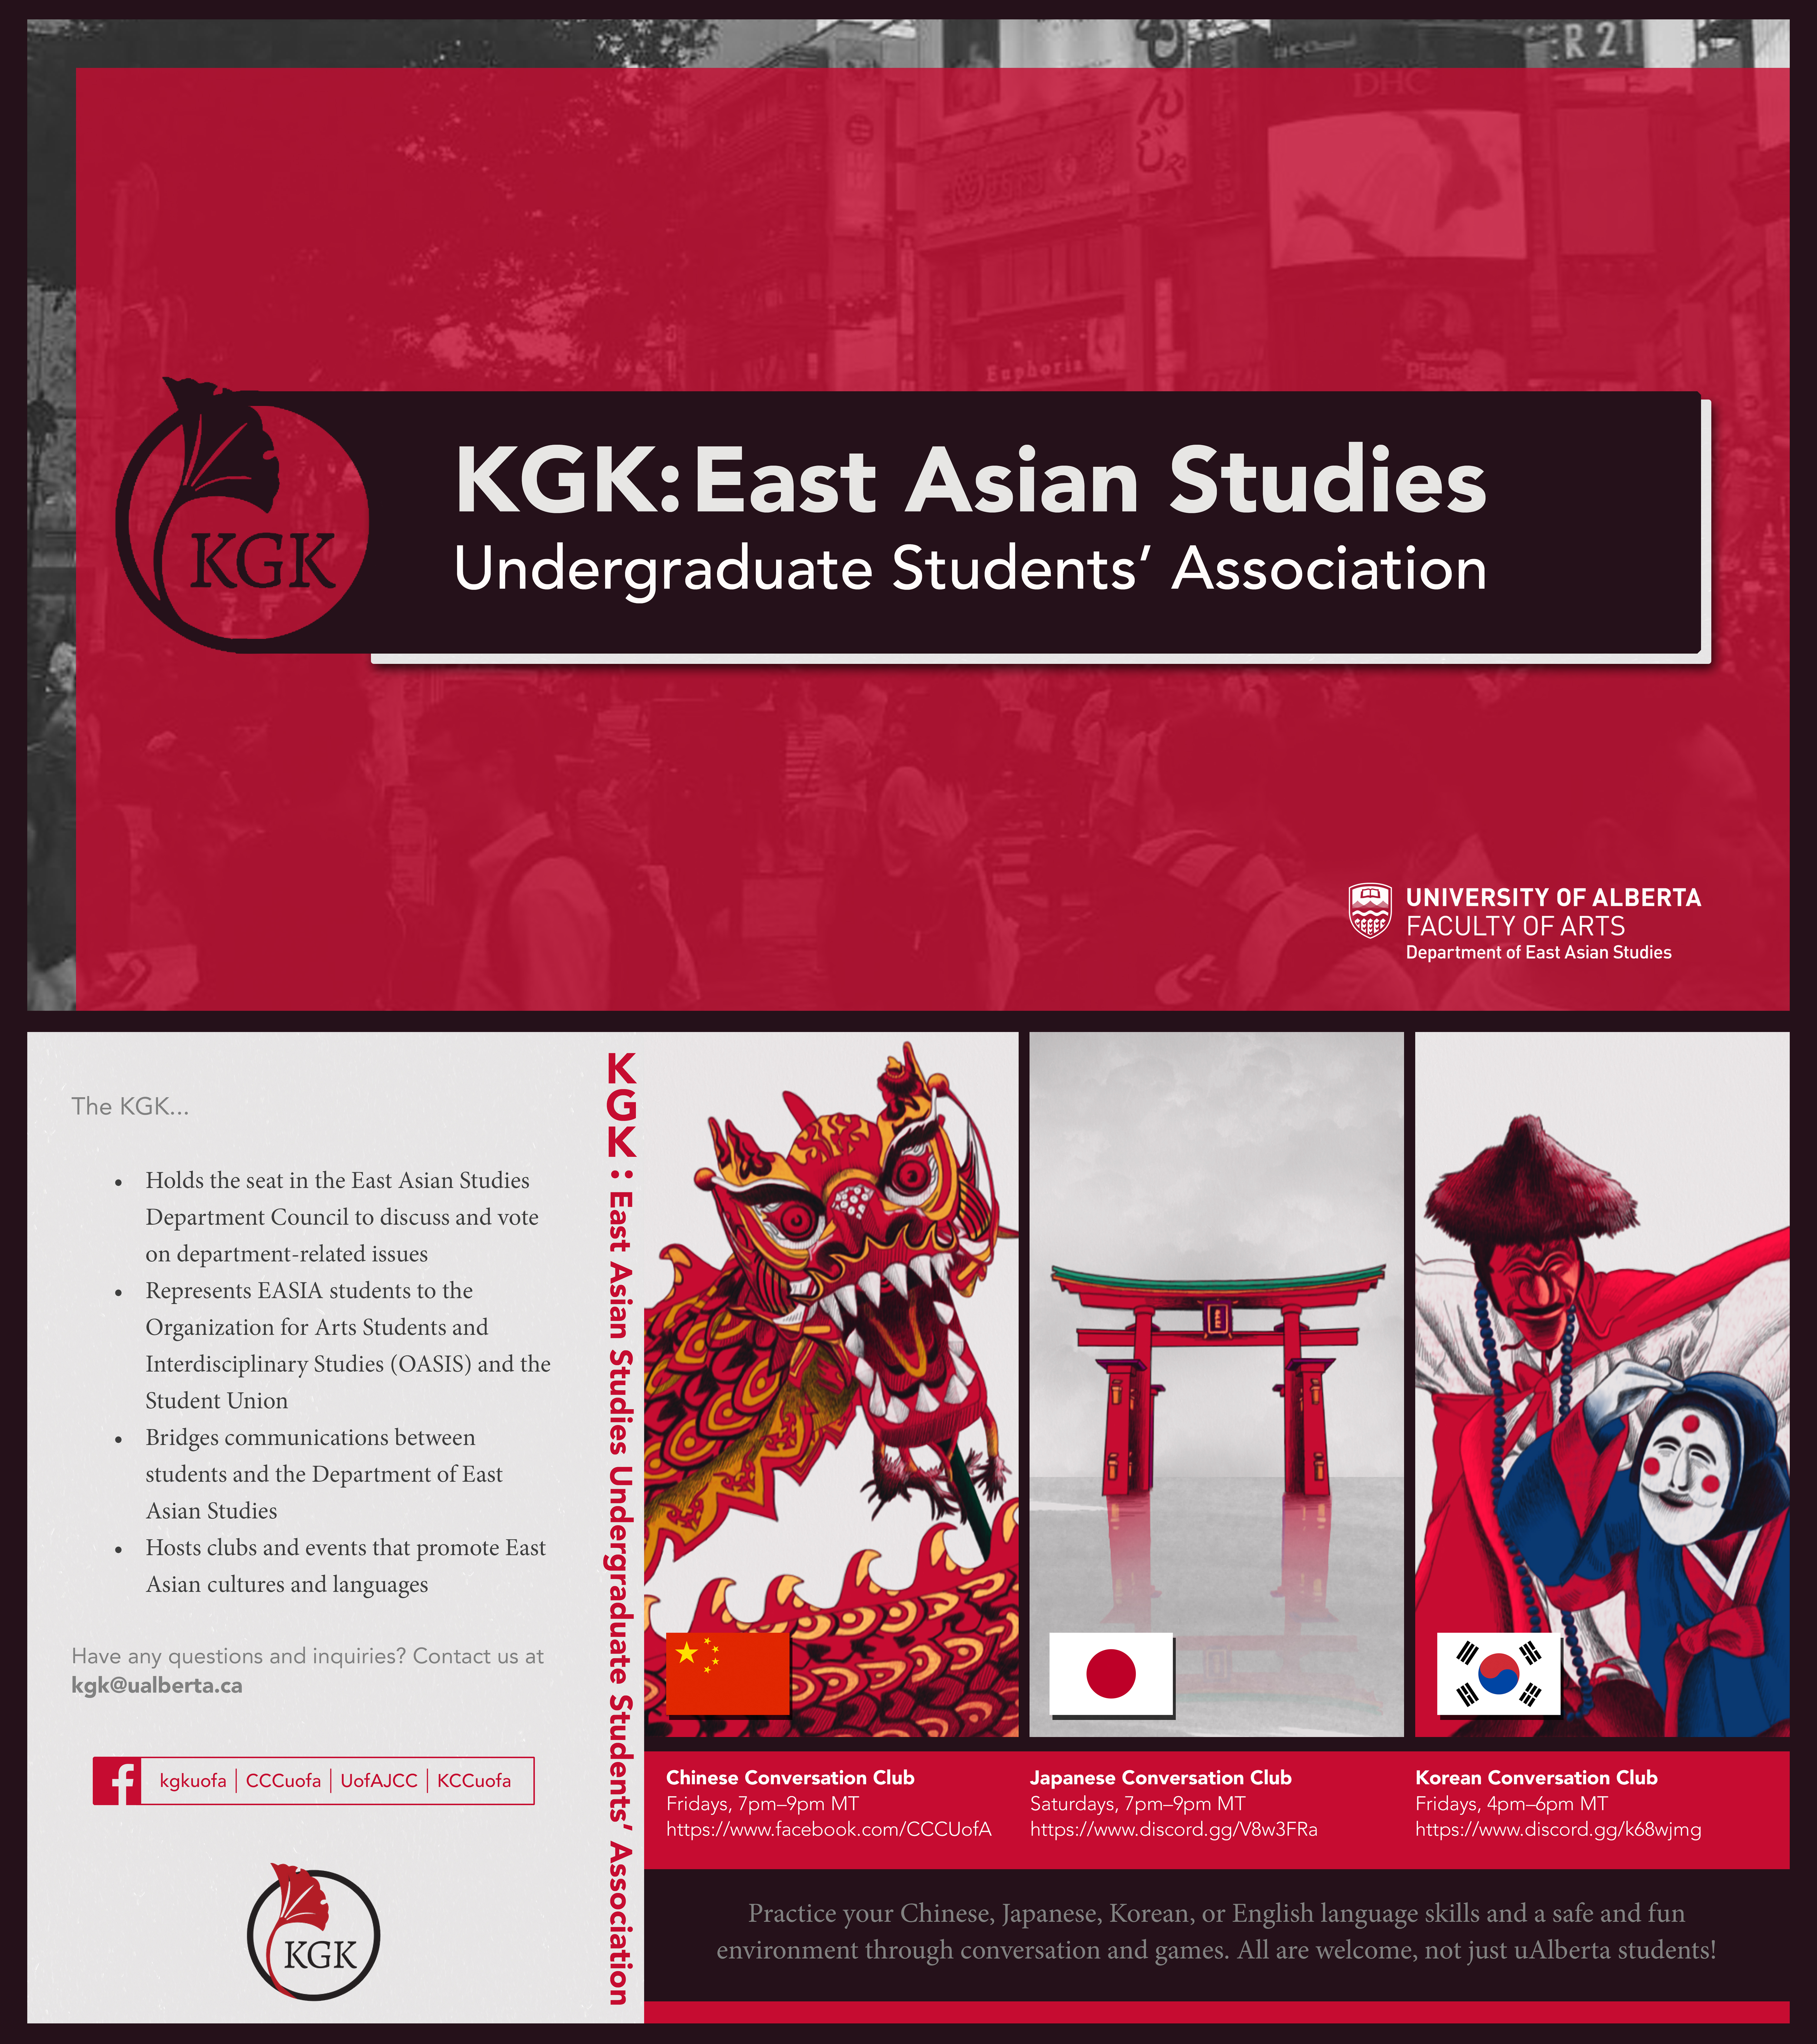 KGK: East Asian Studies Undergraduate Students' Association